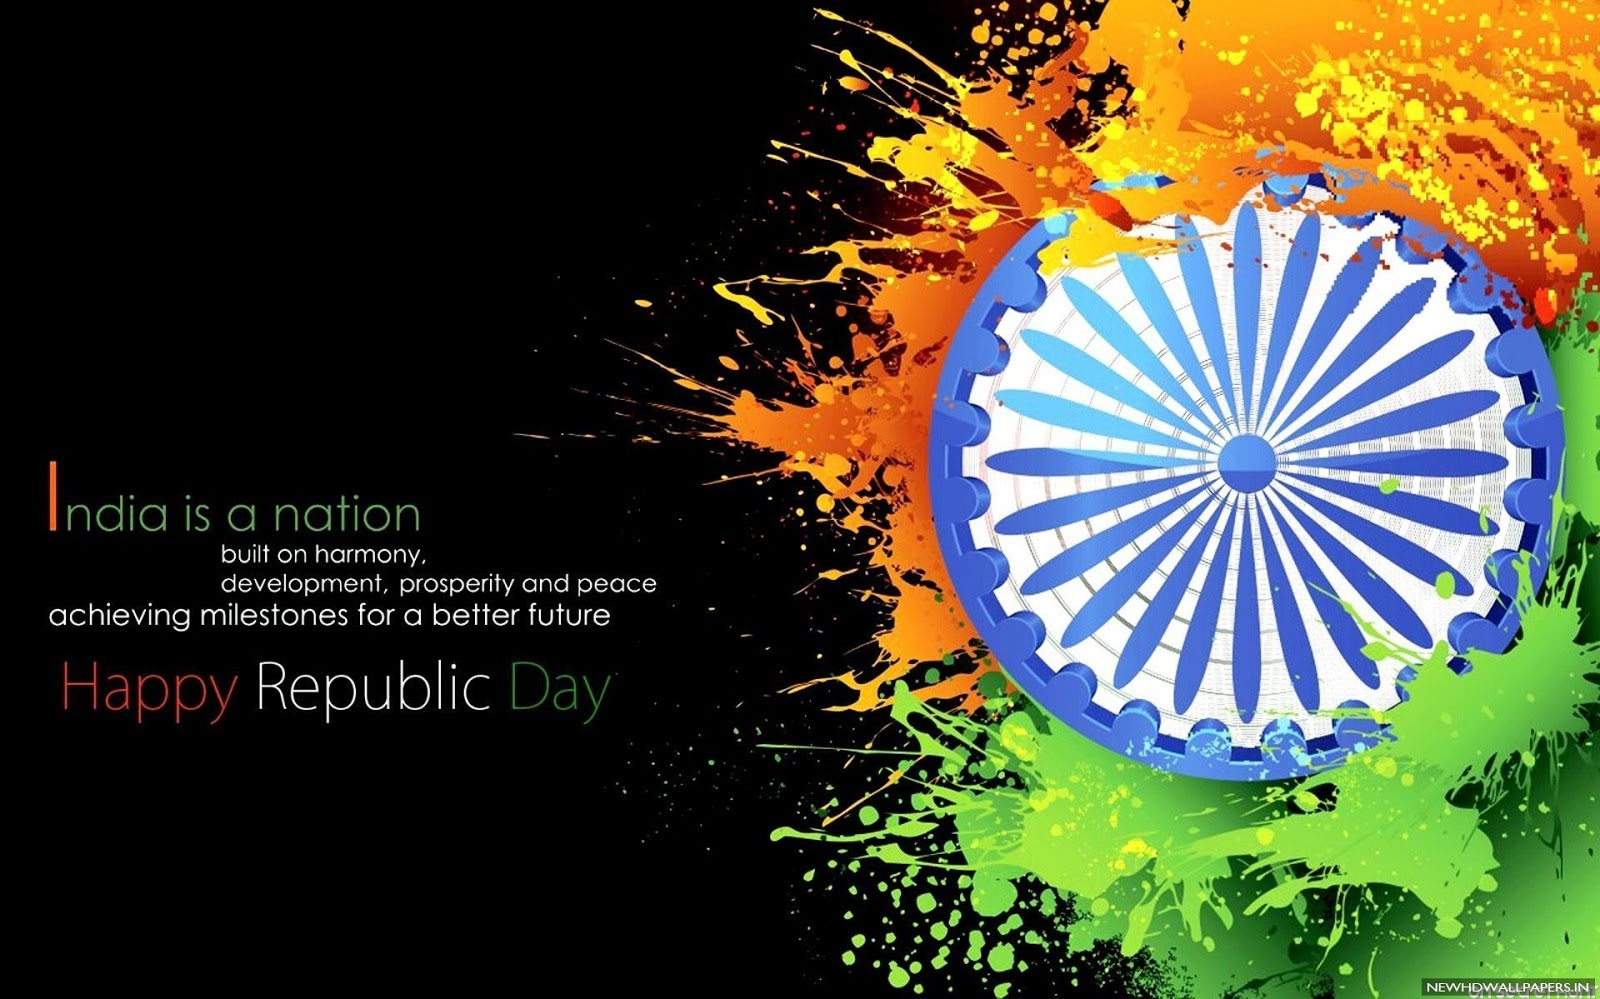 indian republic day speech Live news updates on india's 69th republic day celebrations, including the republic day parade, speeches and on the chief guests who will grace the event.